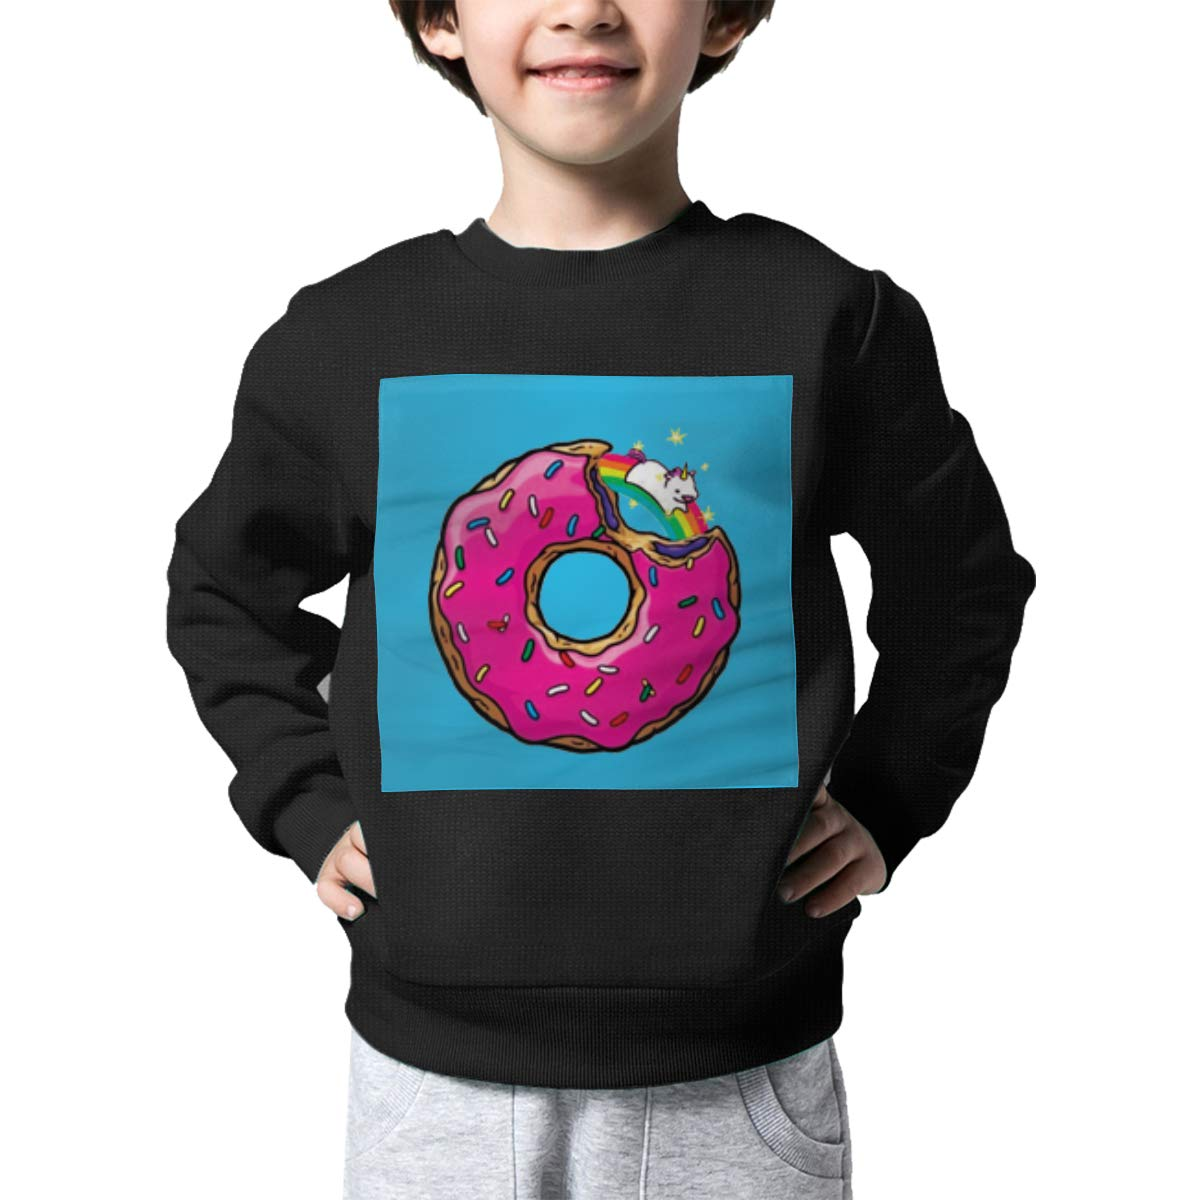 Rainbowhug Rainbow Donut Unicorn Kids Sweater Cute Warm Sweater Toddler for Girls Boys